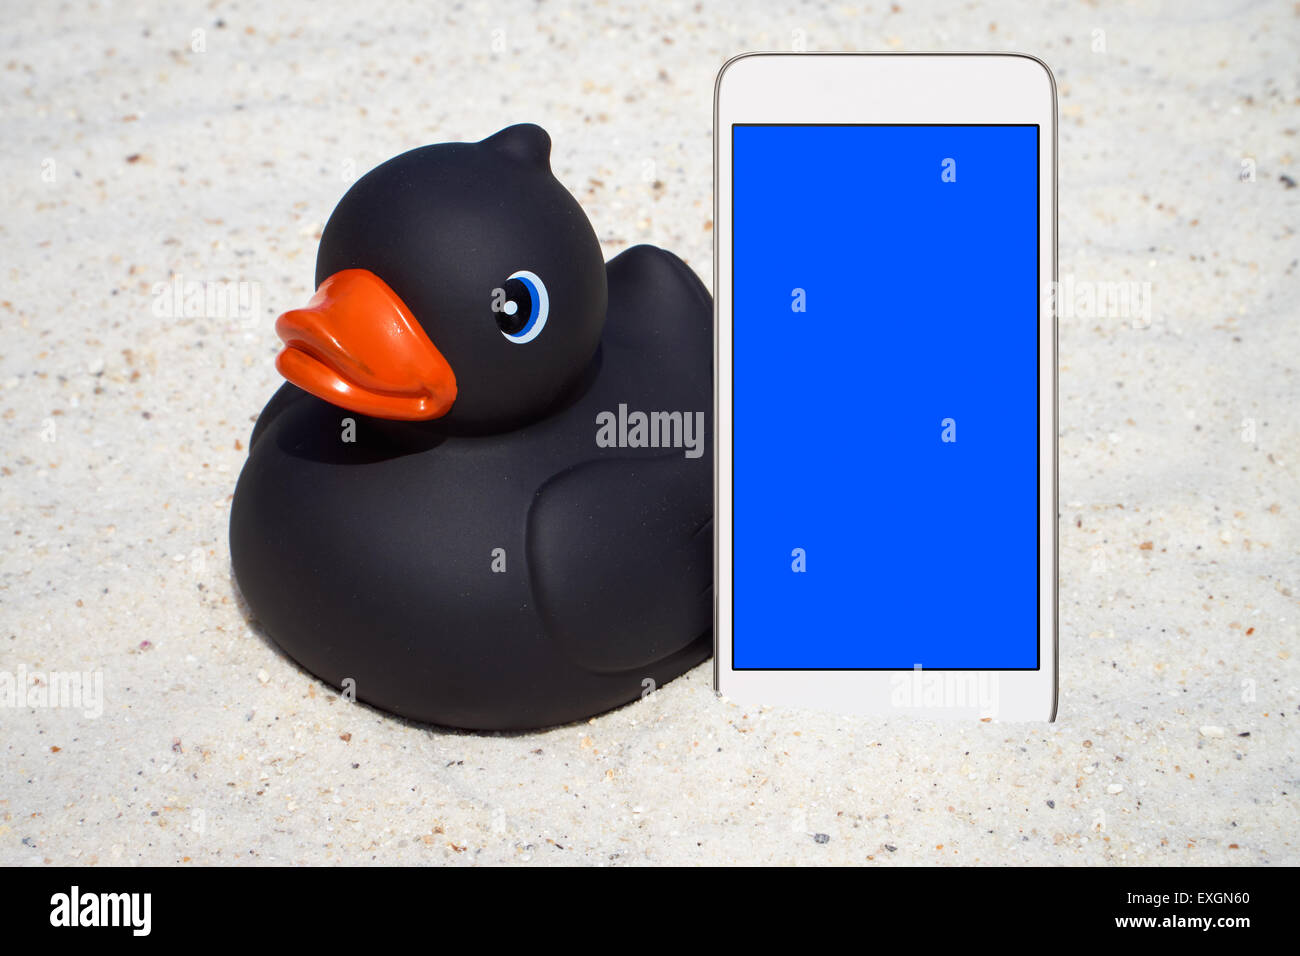 Black rubber duck and a white Smartphone with empty screen display on the beach Stock Photo